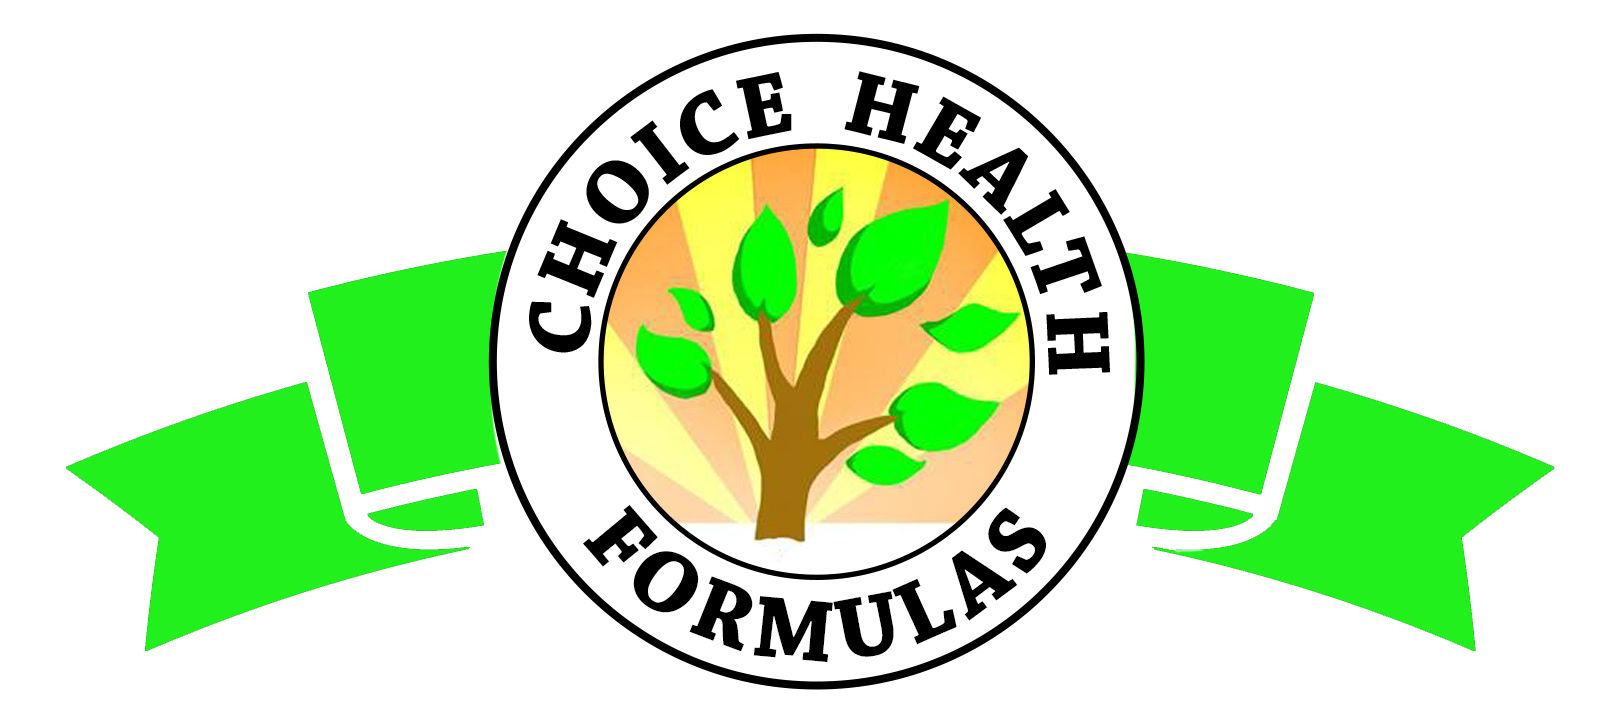 Choice Health Formulas coupons